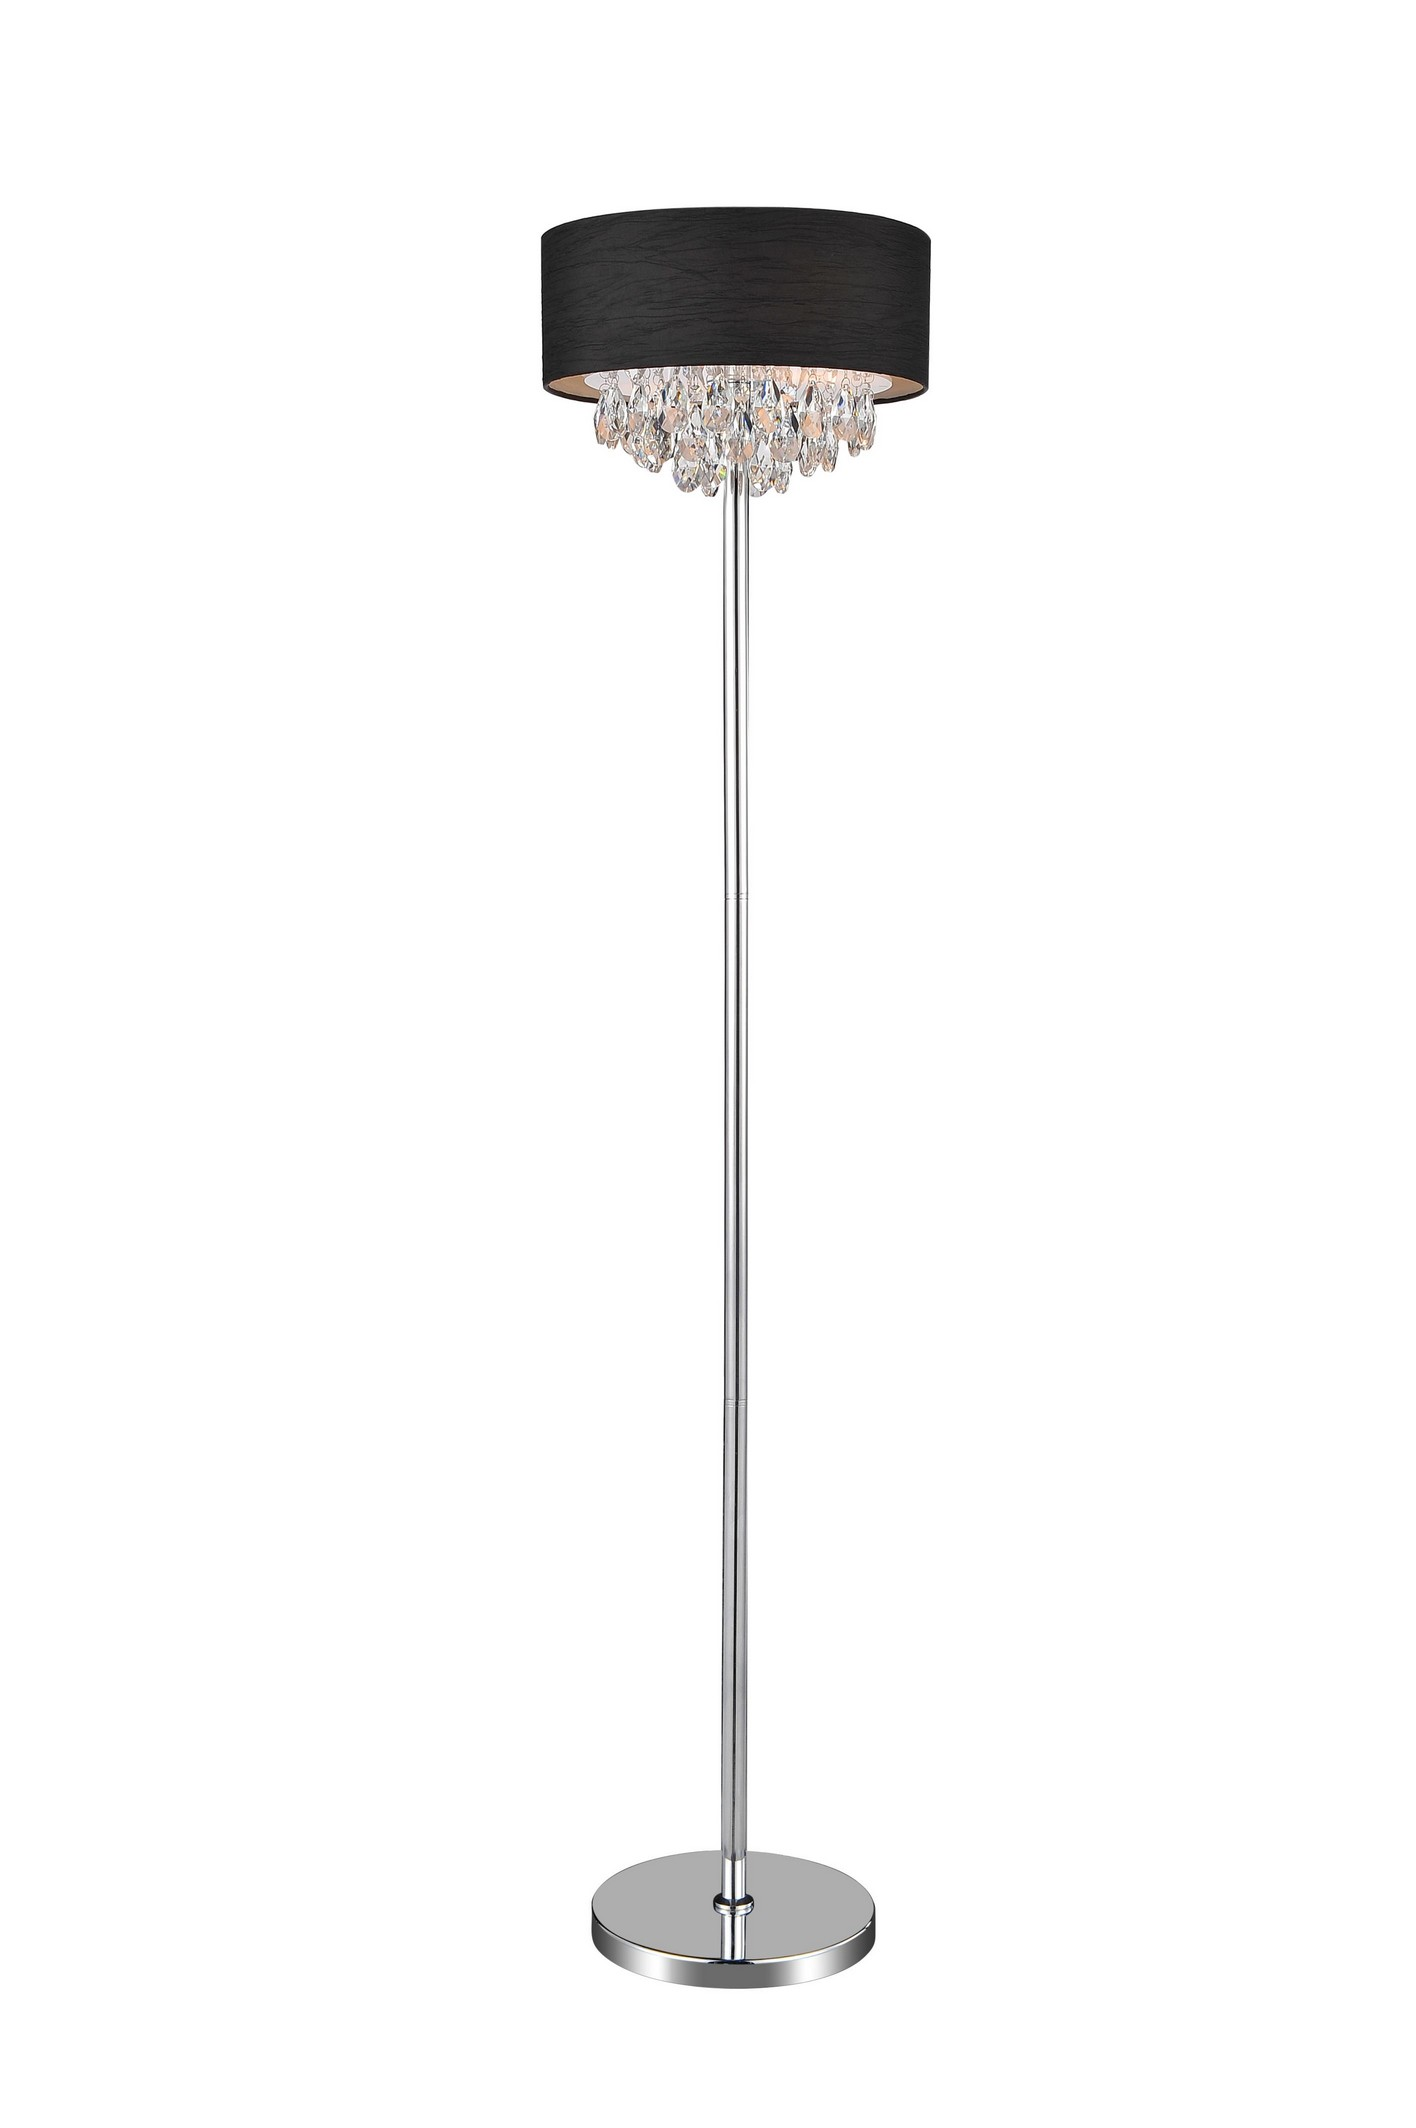 4 Light Floor Lamp with Chrome finish